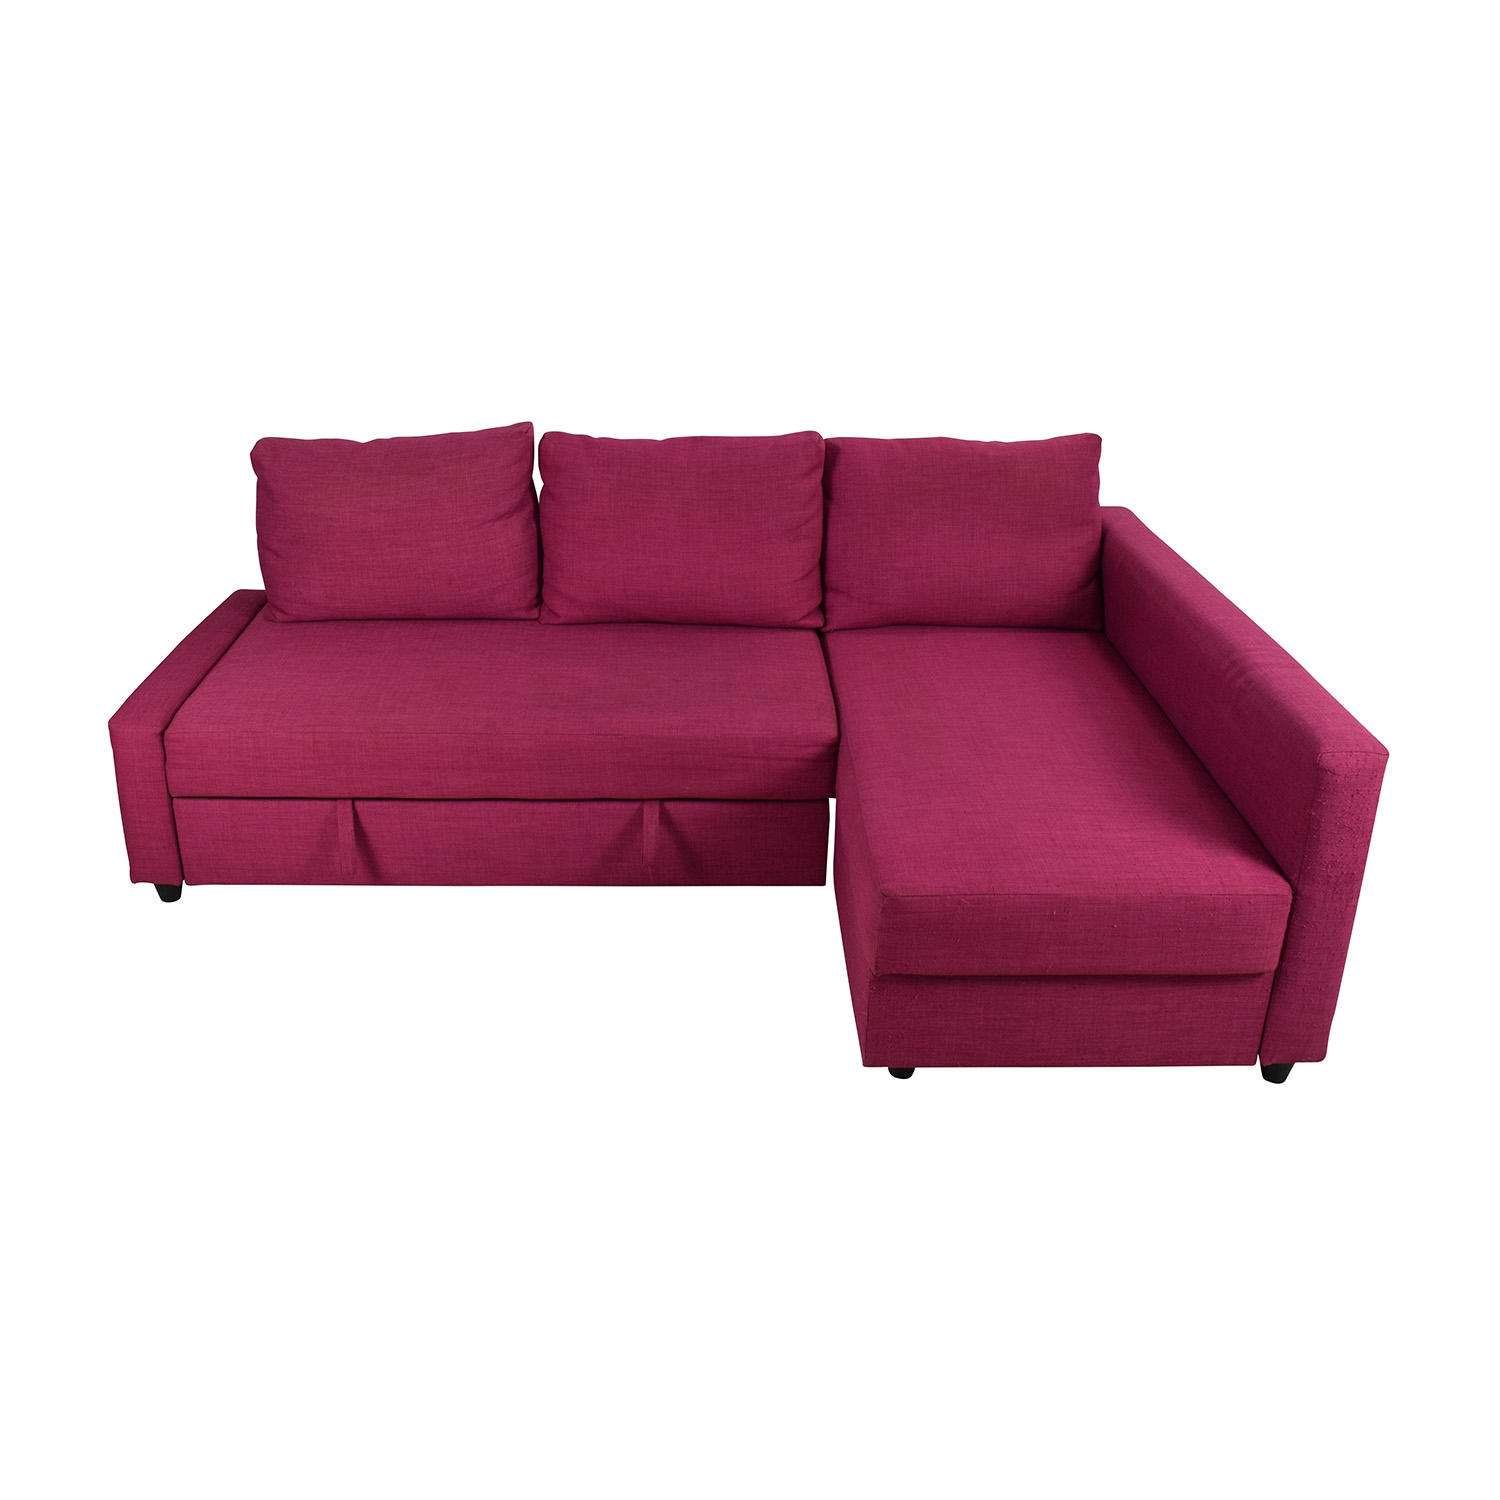 Astonishing 66 Off Ikea Ikea Friheten Pink Sleeper Sofa Sofas Bralicious Painted Fabric Chair Ideas Braliciousco